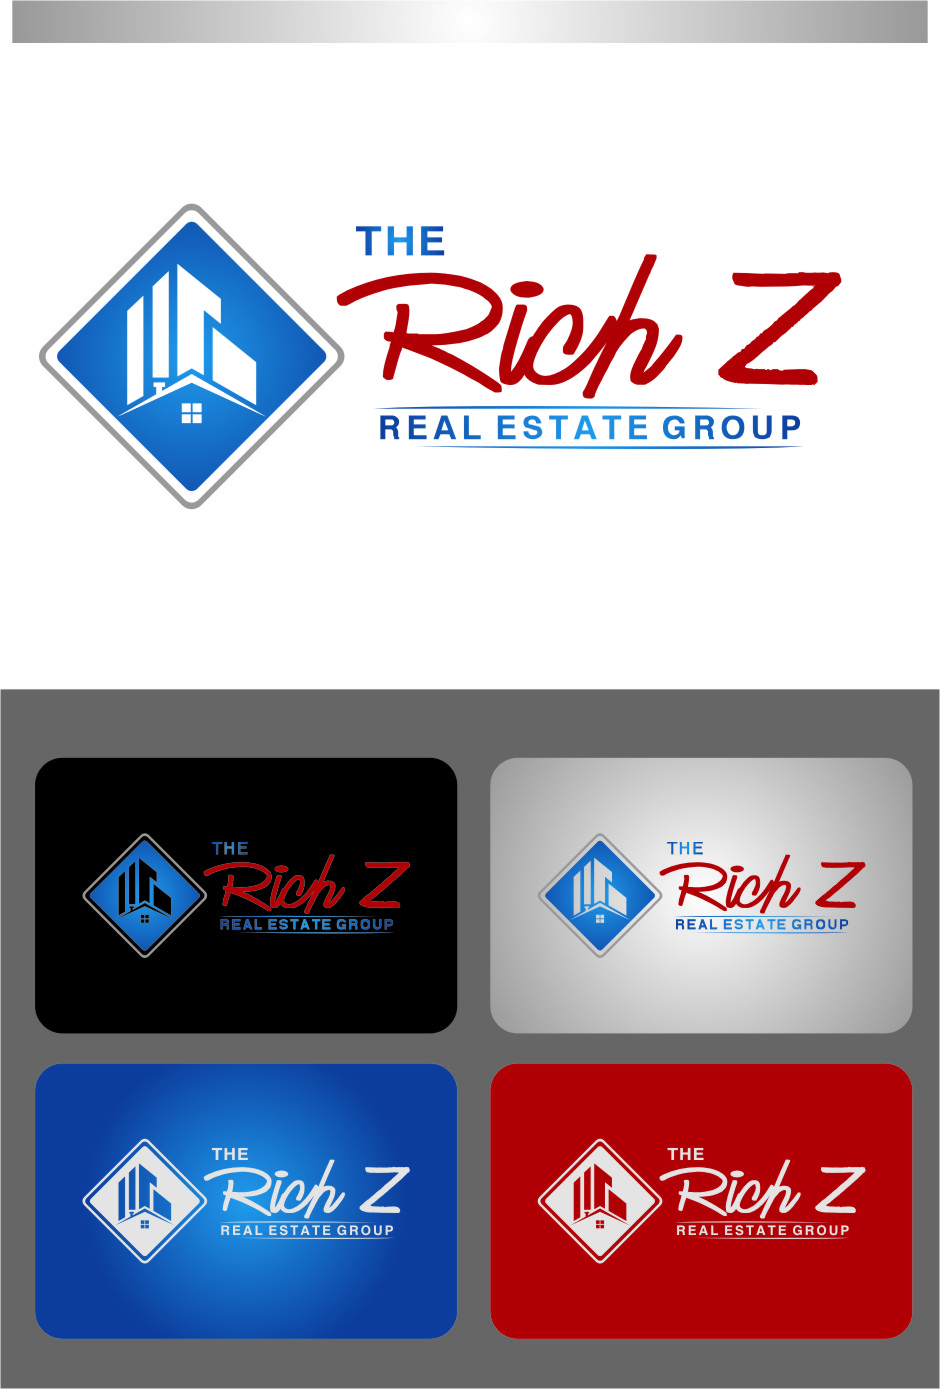 Logo Design by RasYa Muhammad Athaya - Entry No. 120 in the Logo Design Contest The Rich Z. Real Estate Group Logo Design.